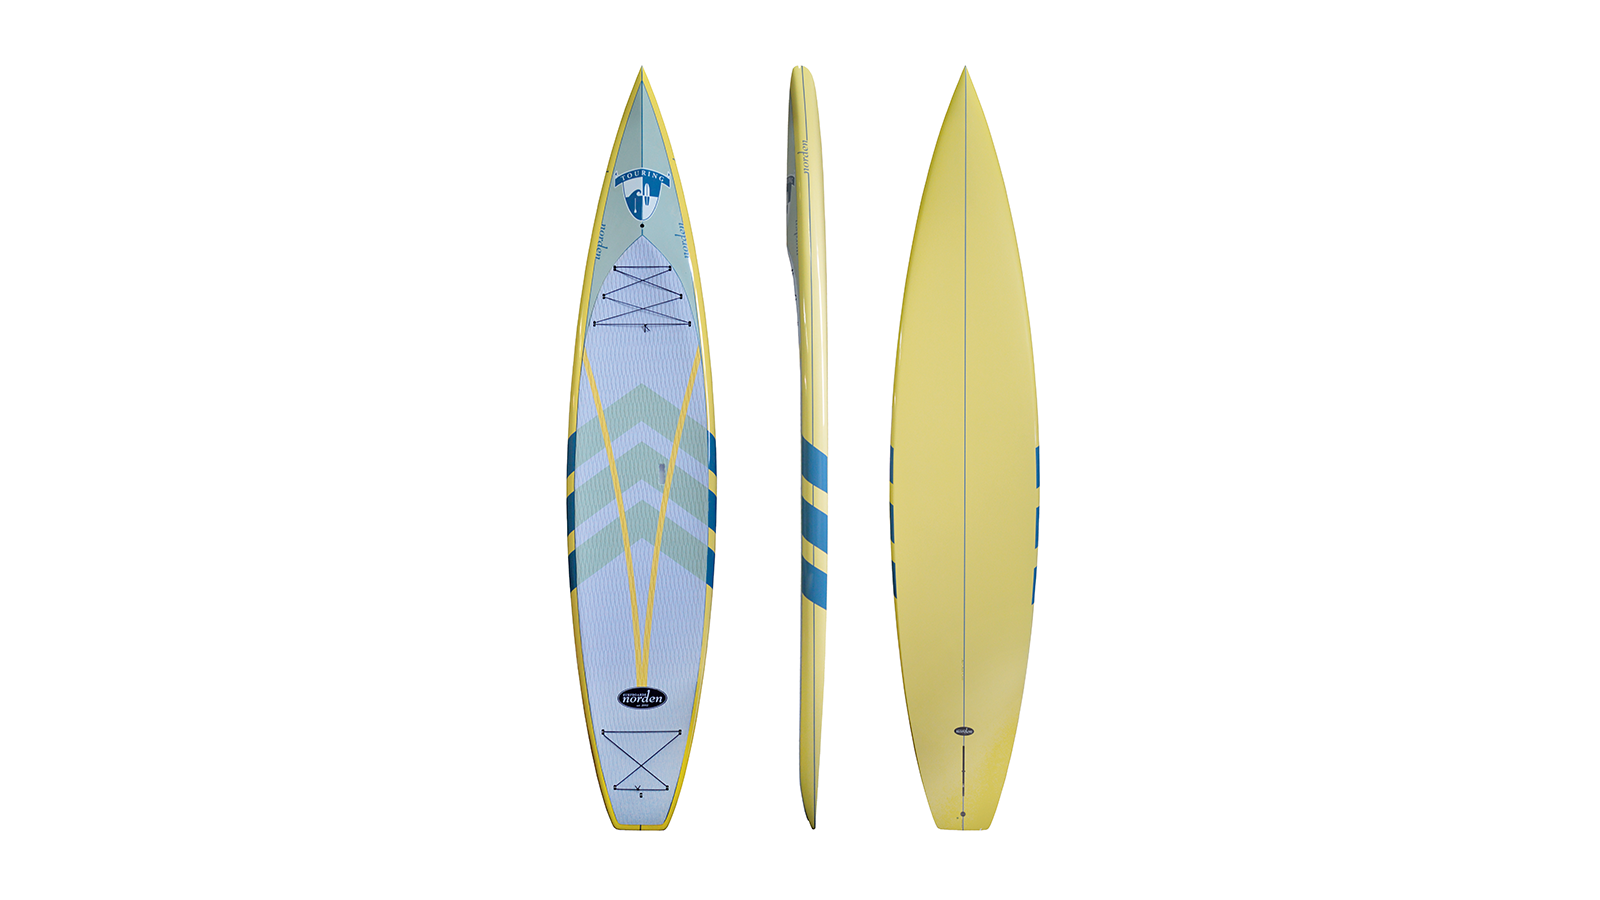 norden-surfboards-Touring-SUP-shell